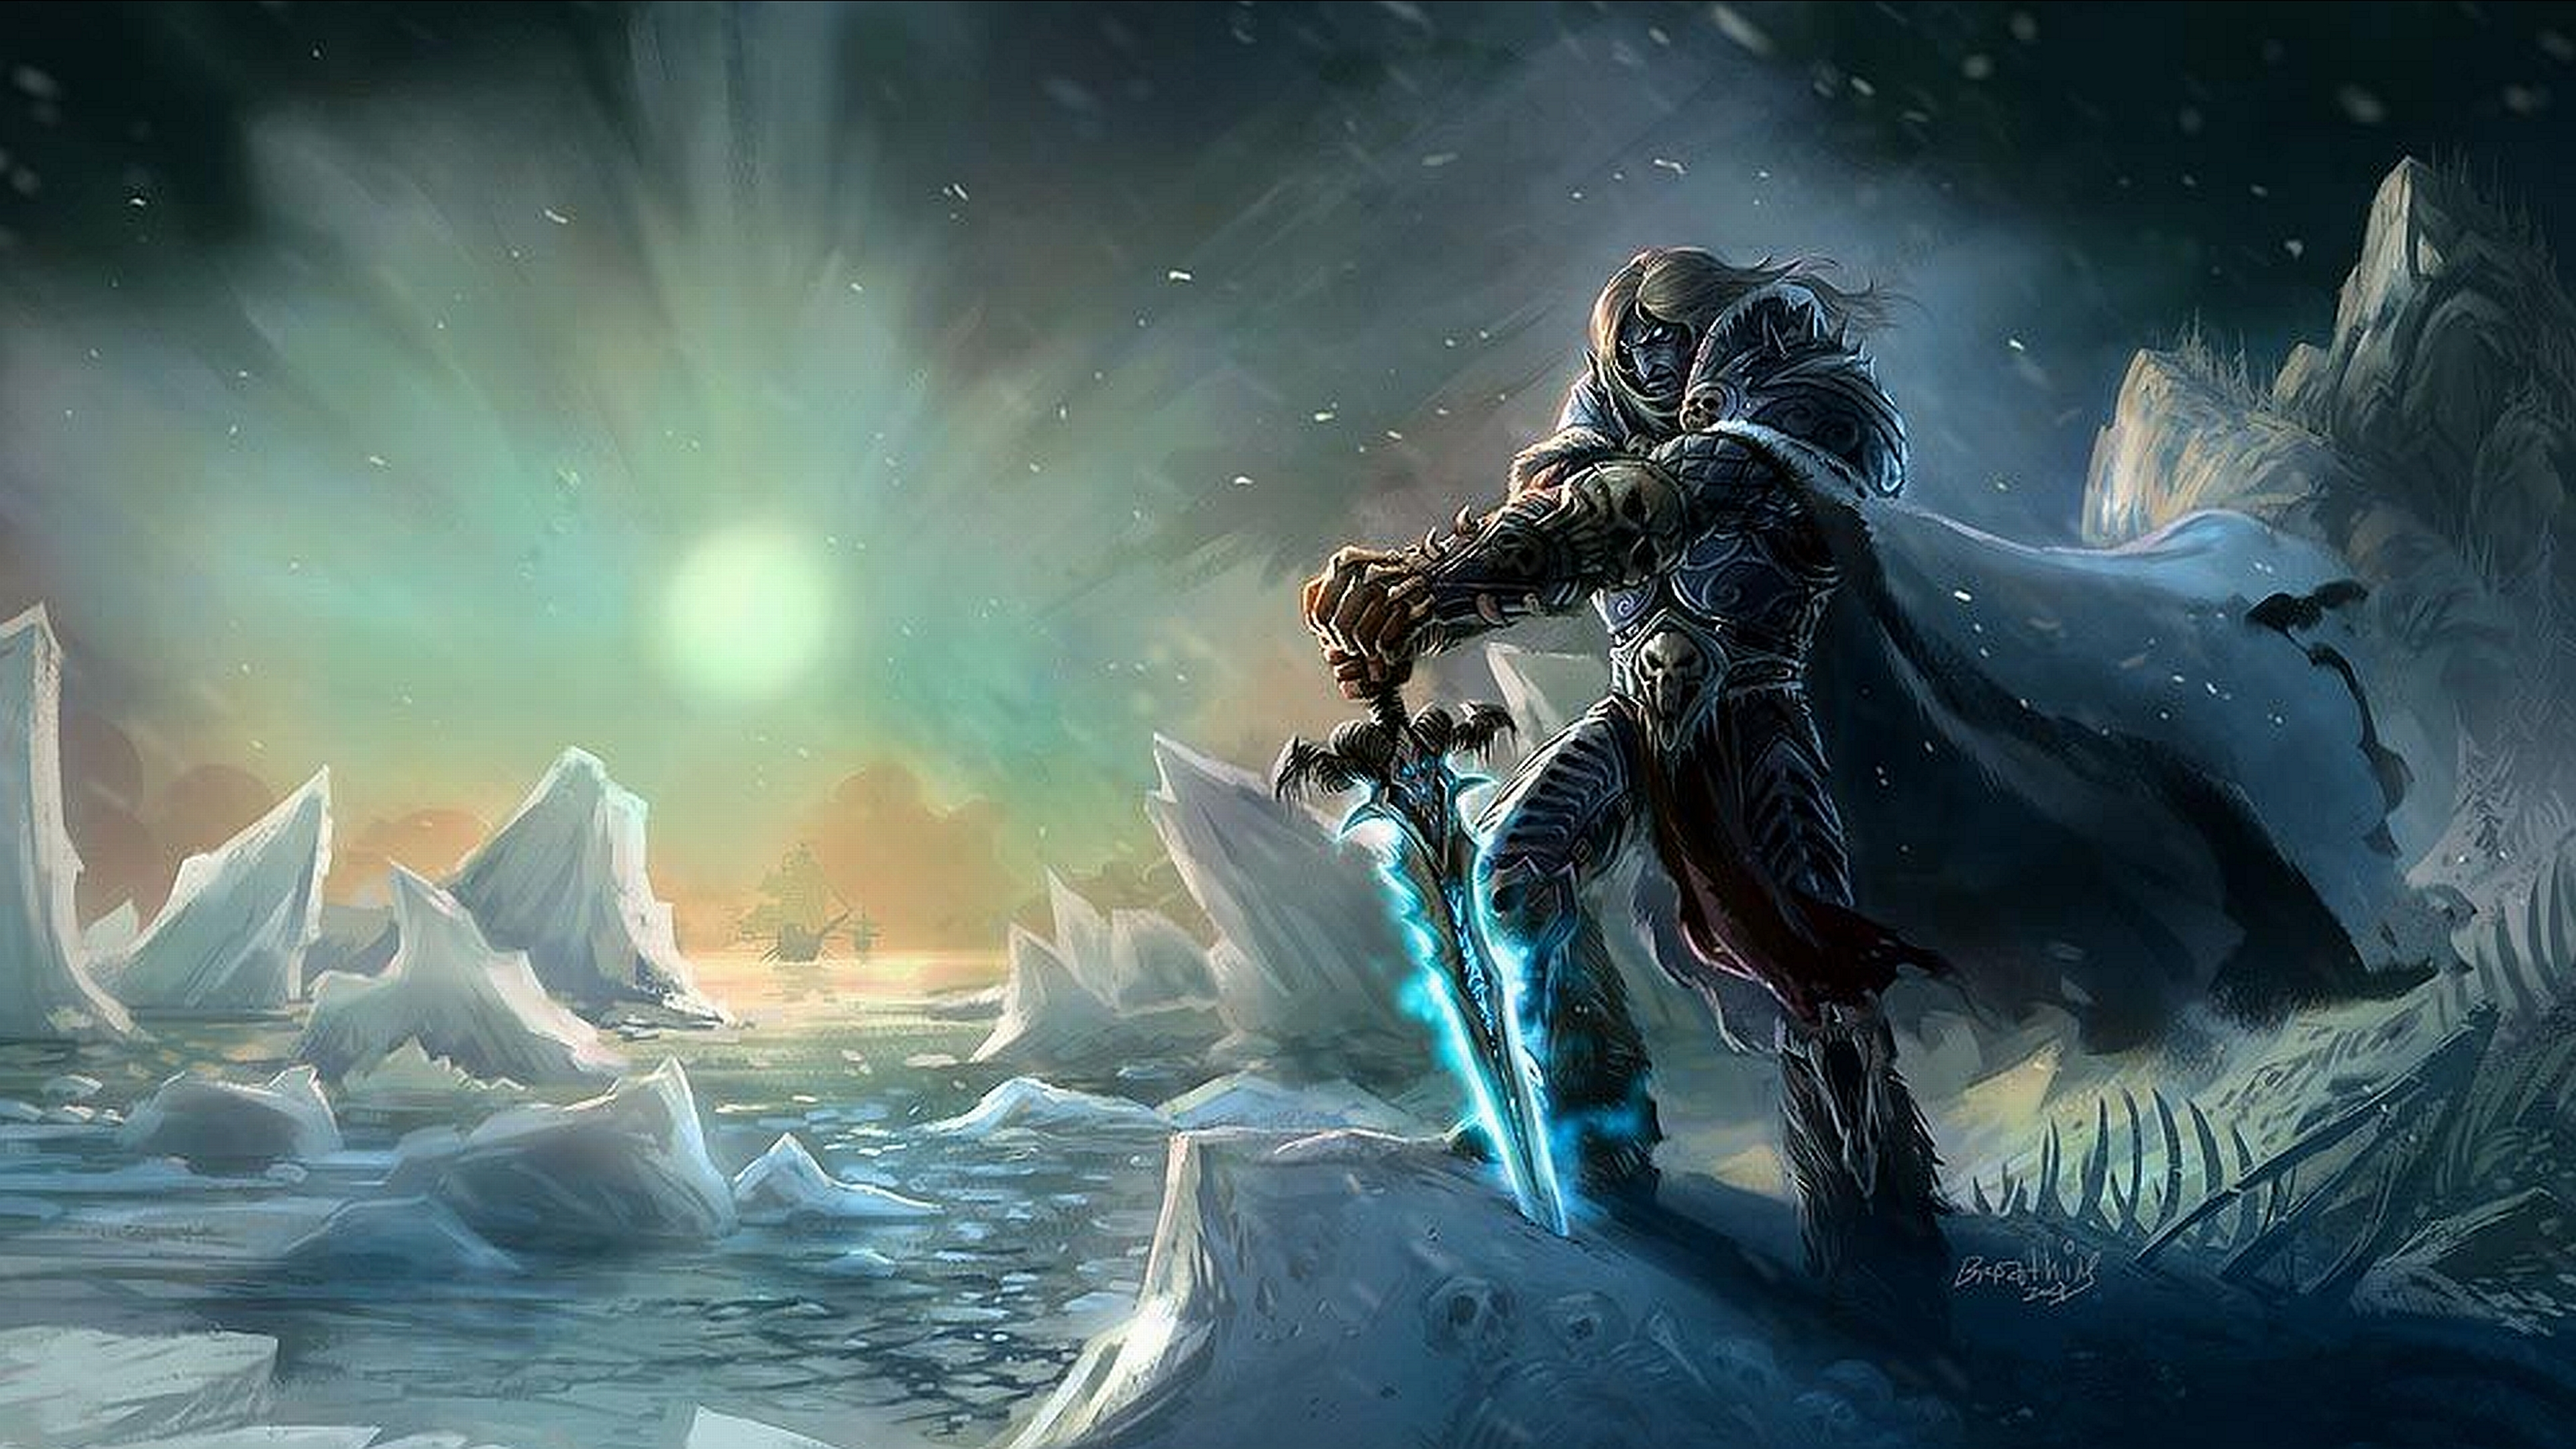 928 world of warcraft hd wallpapers | background images - wallpaper